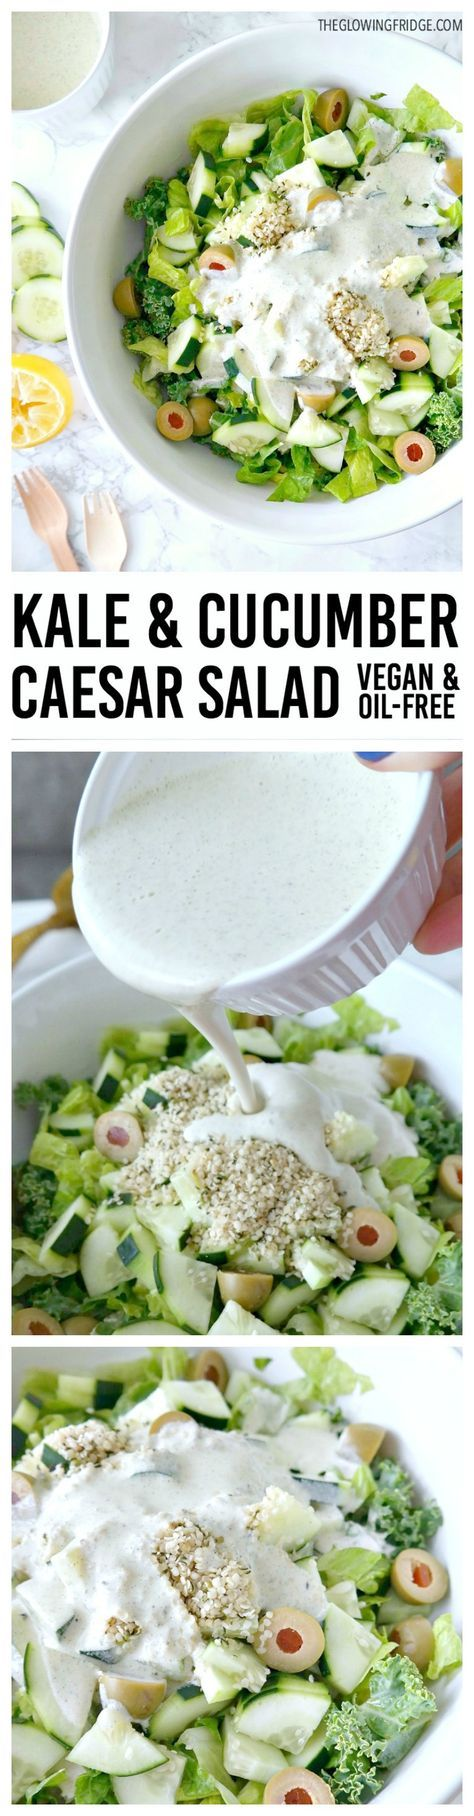 VEGAN, OIL-FREE, NUT-FREE, GLUTEN-FREE, CASHEW-FREE. Zesty Kale Cucumber Caesar Salad. Super fresh, light and crunchy with a tangy vegan caesar dressing, Simple and delicious - a perfectly healthy remake of the classic caesar salad. From The Glowing Fridge. #vegan #caesar #salad